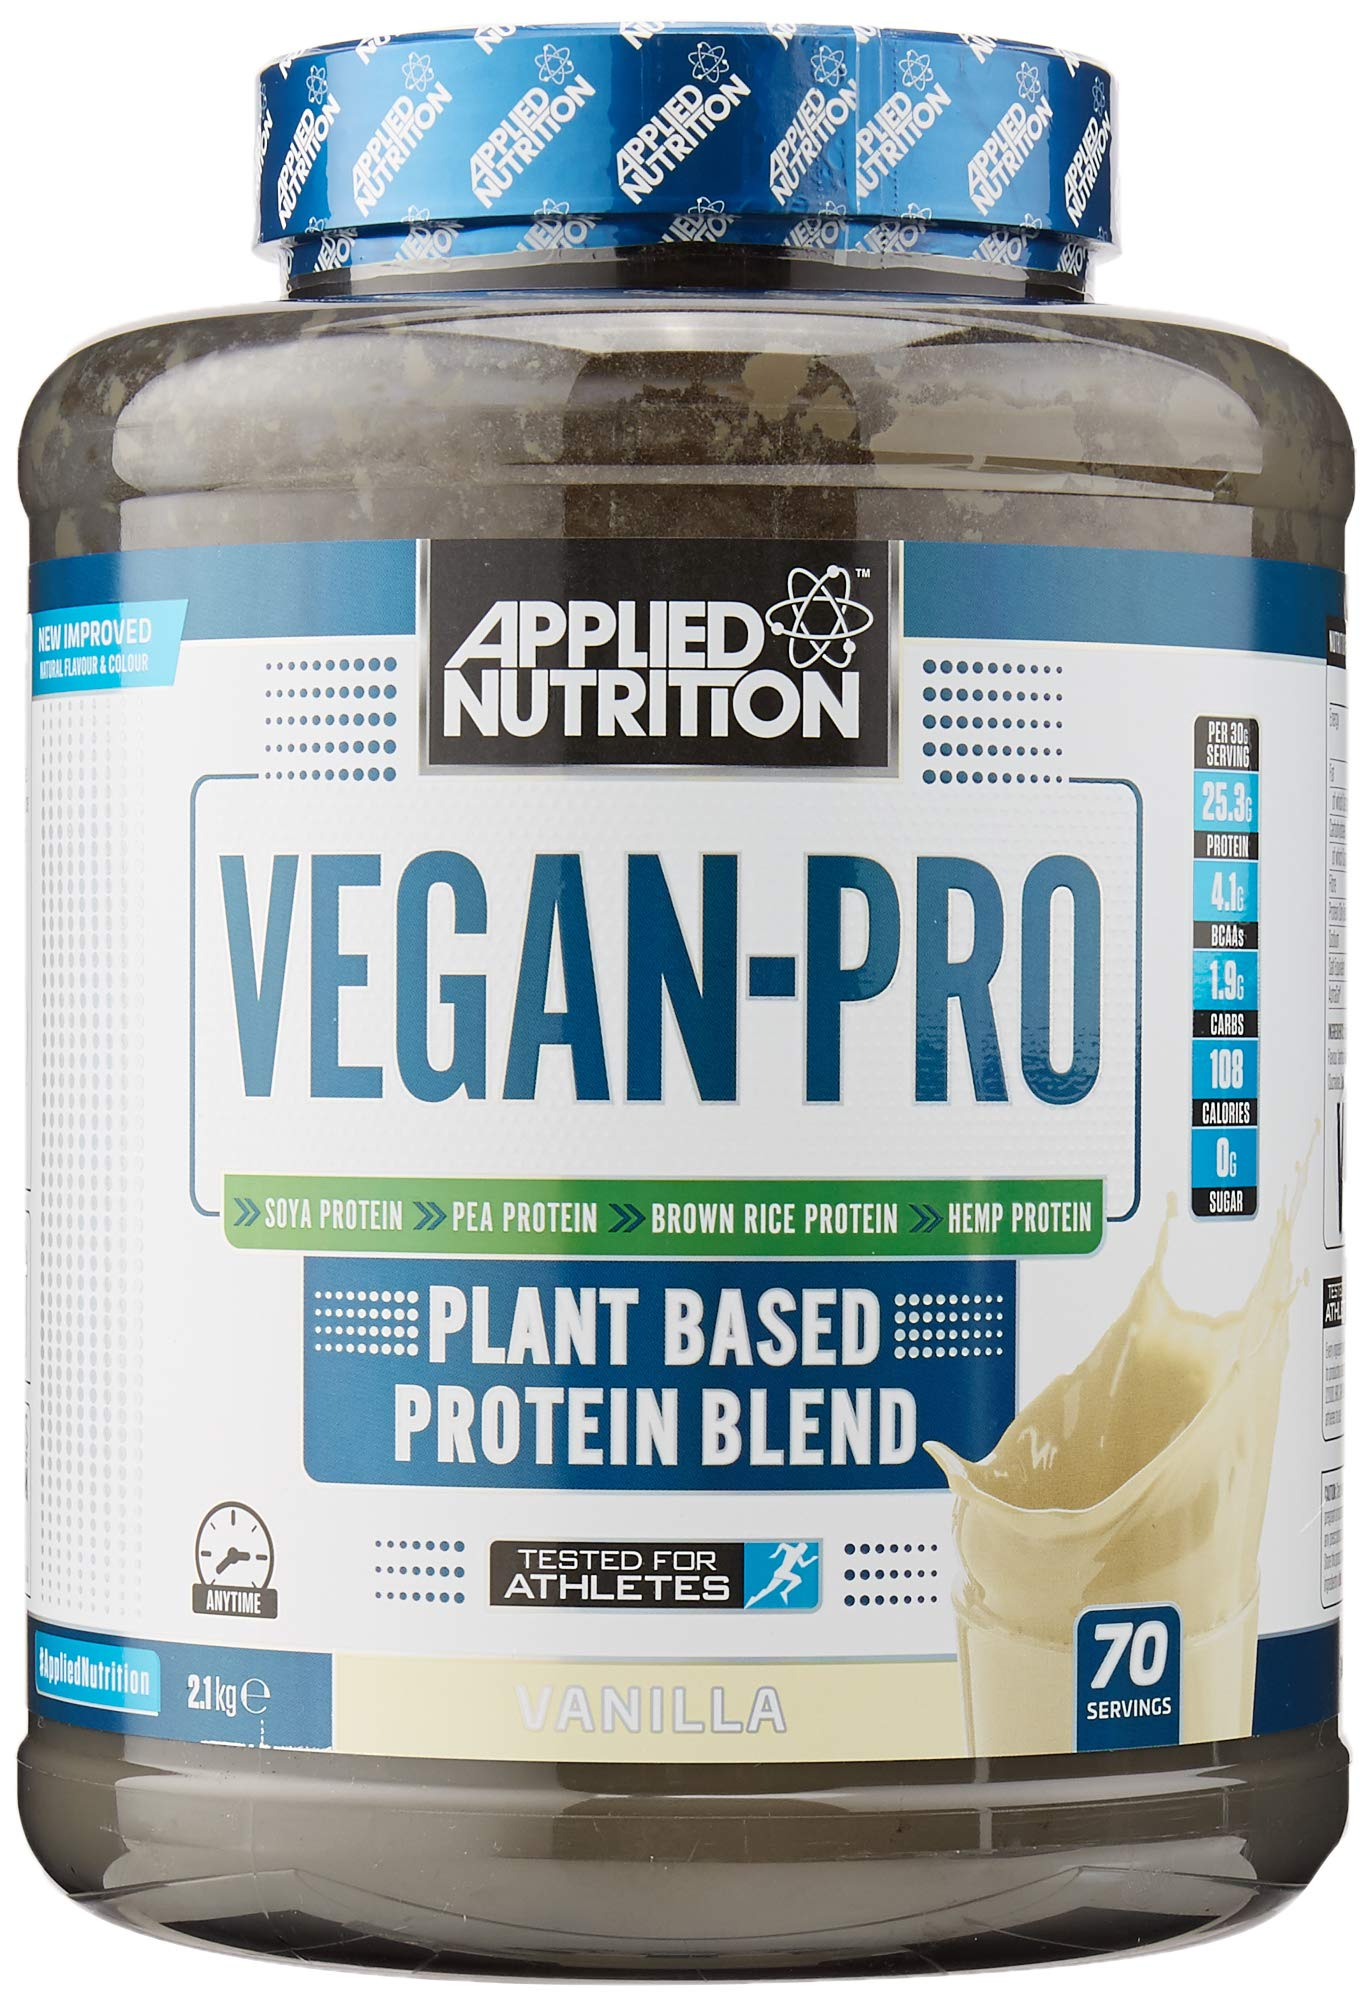 Applied Nutrition Vegan Pro Plant Based Protein Blend Powder Supplement Low Fat & Sugar Natural Flavour & Colour with…